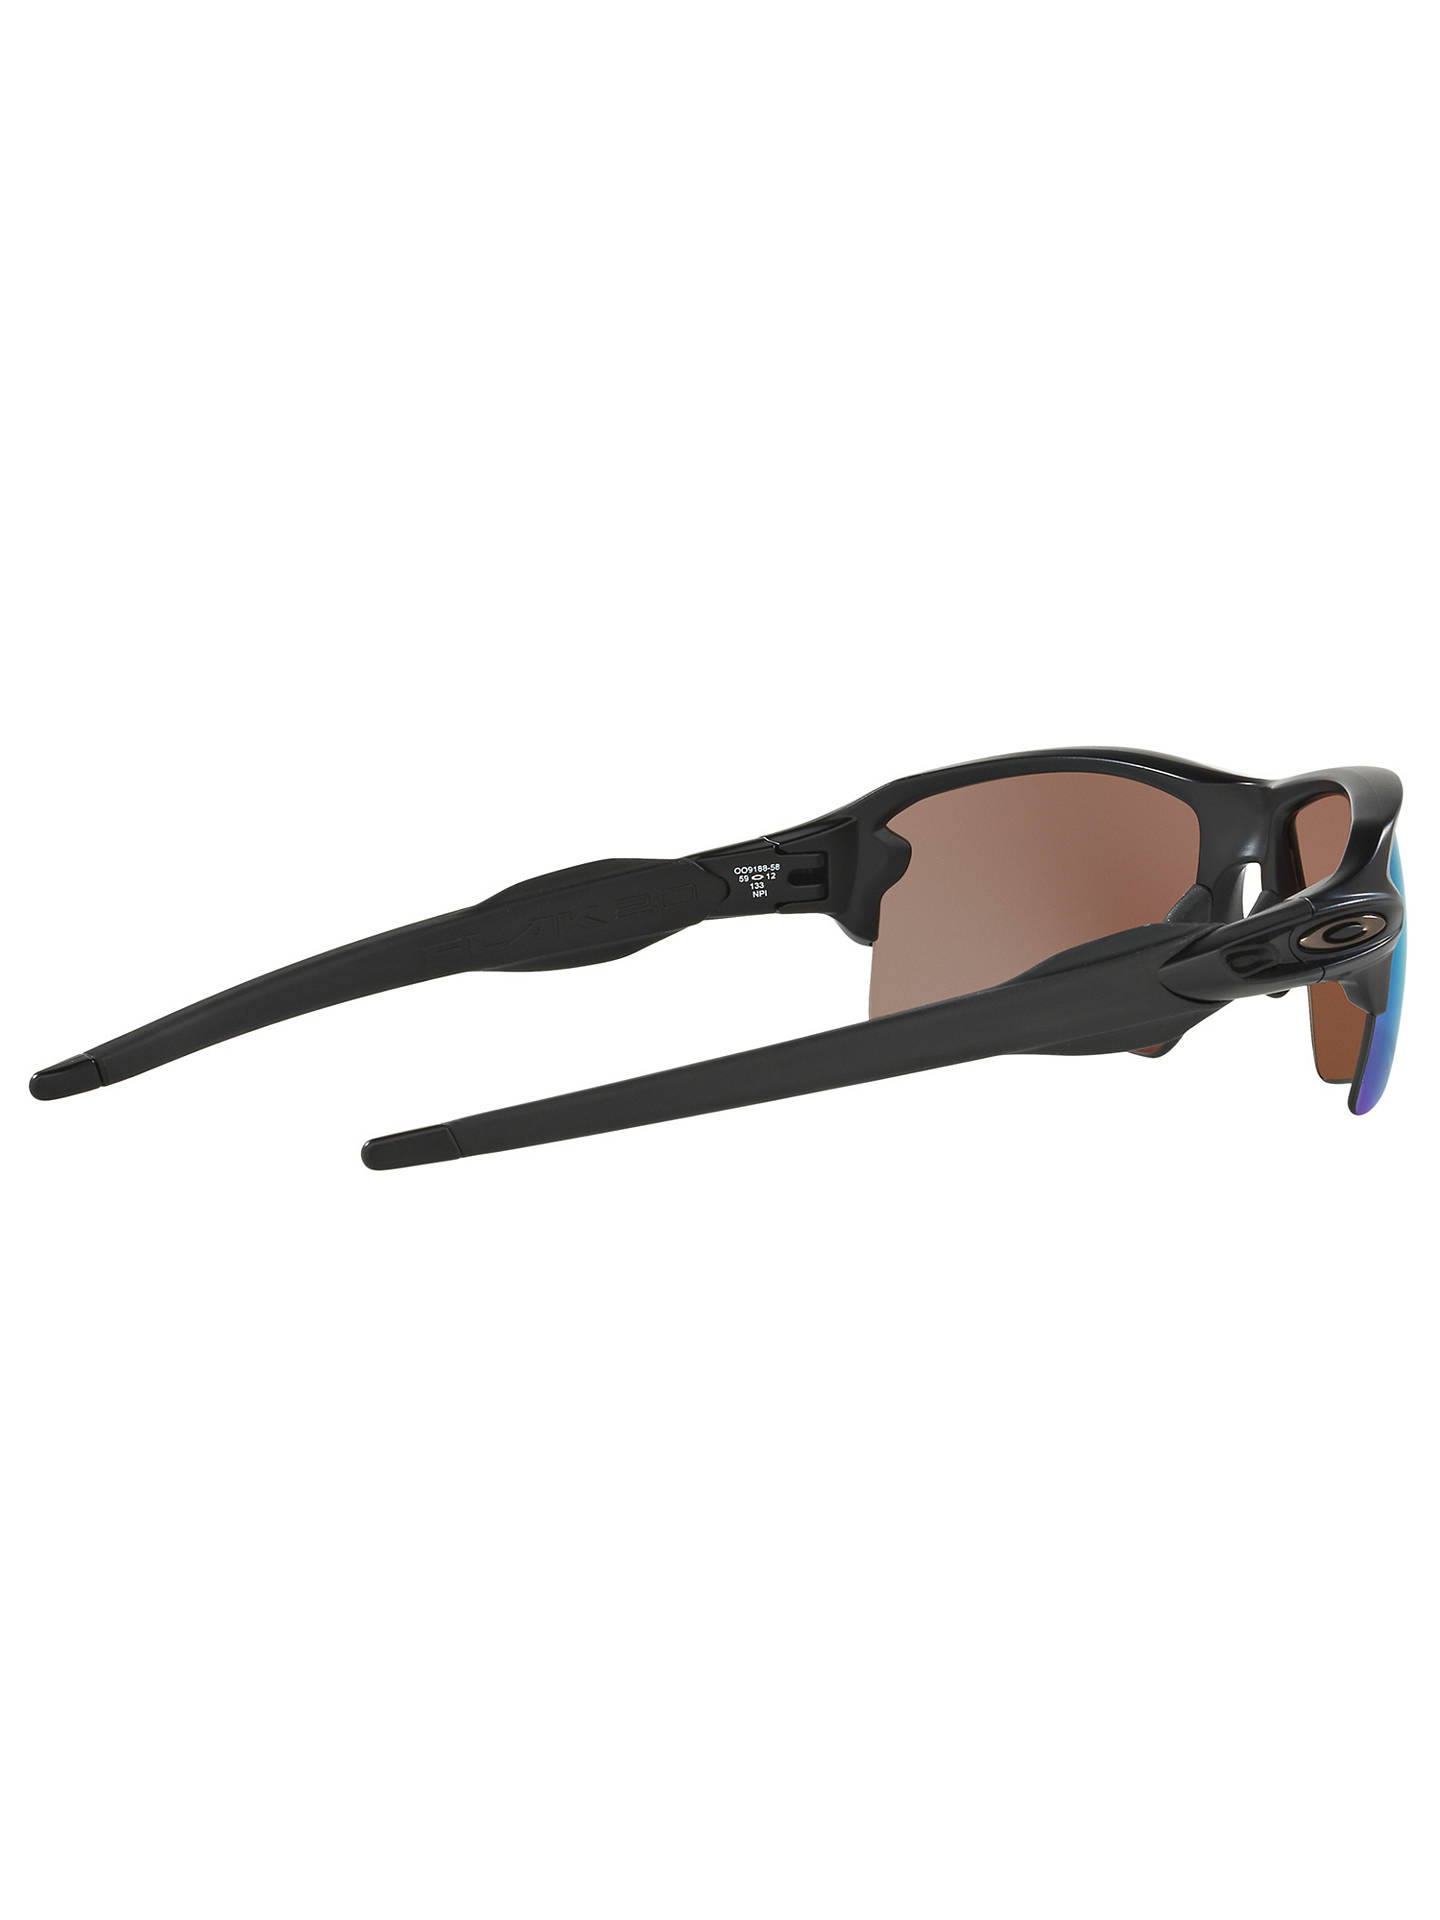 f769081ea5 ... BuyOakley OO9188 Men s Flak 2.0 XL Prizm™ Polarised Rectangular  Sunglasses